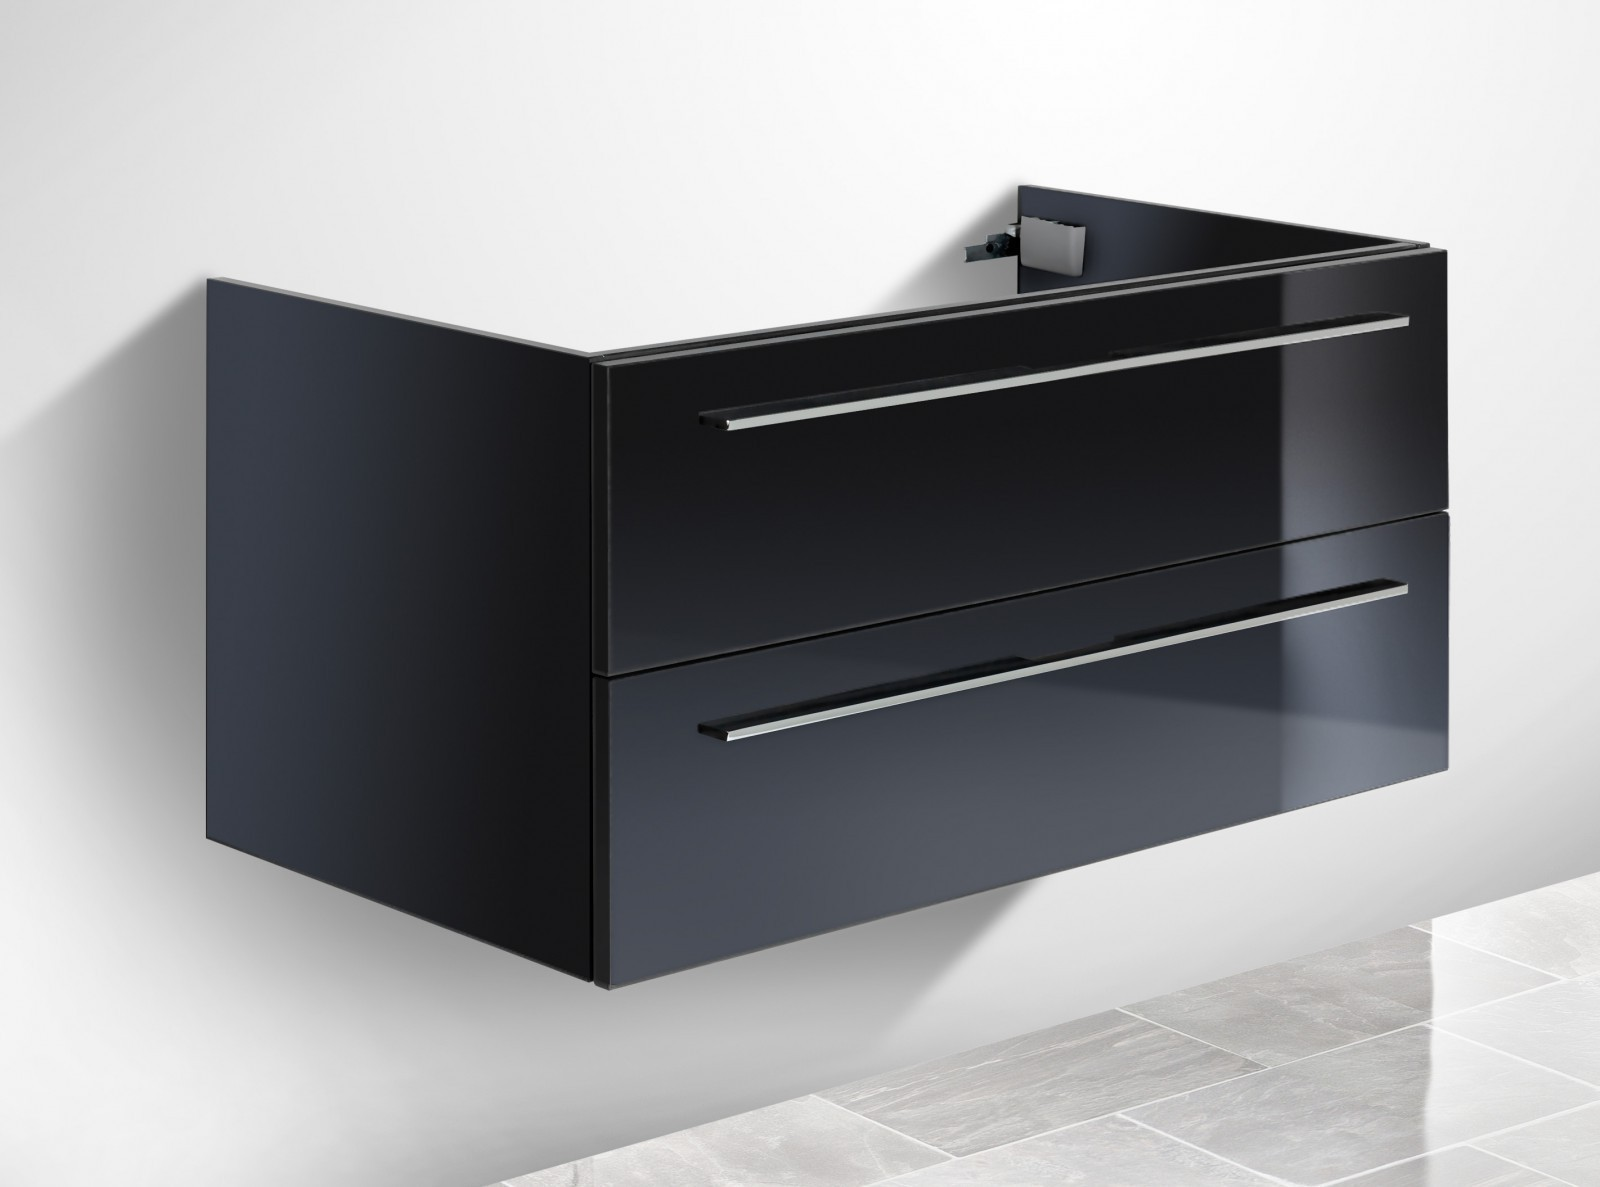 unterschrank f r keramag icon 75 cm waschbeckenunterschrank. Black Bedroom Furniture Sets. Home Design Ideas